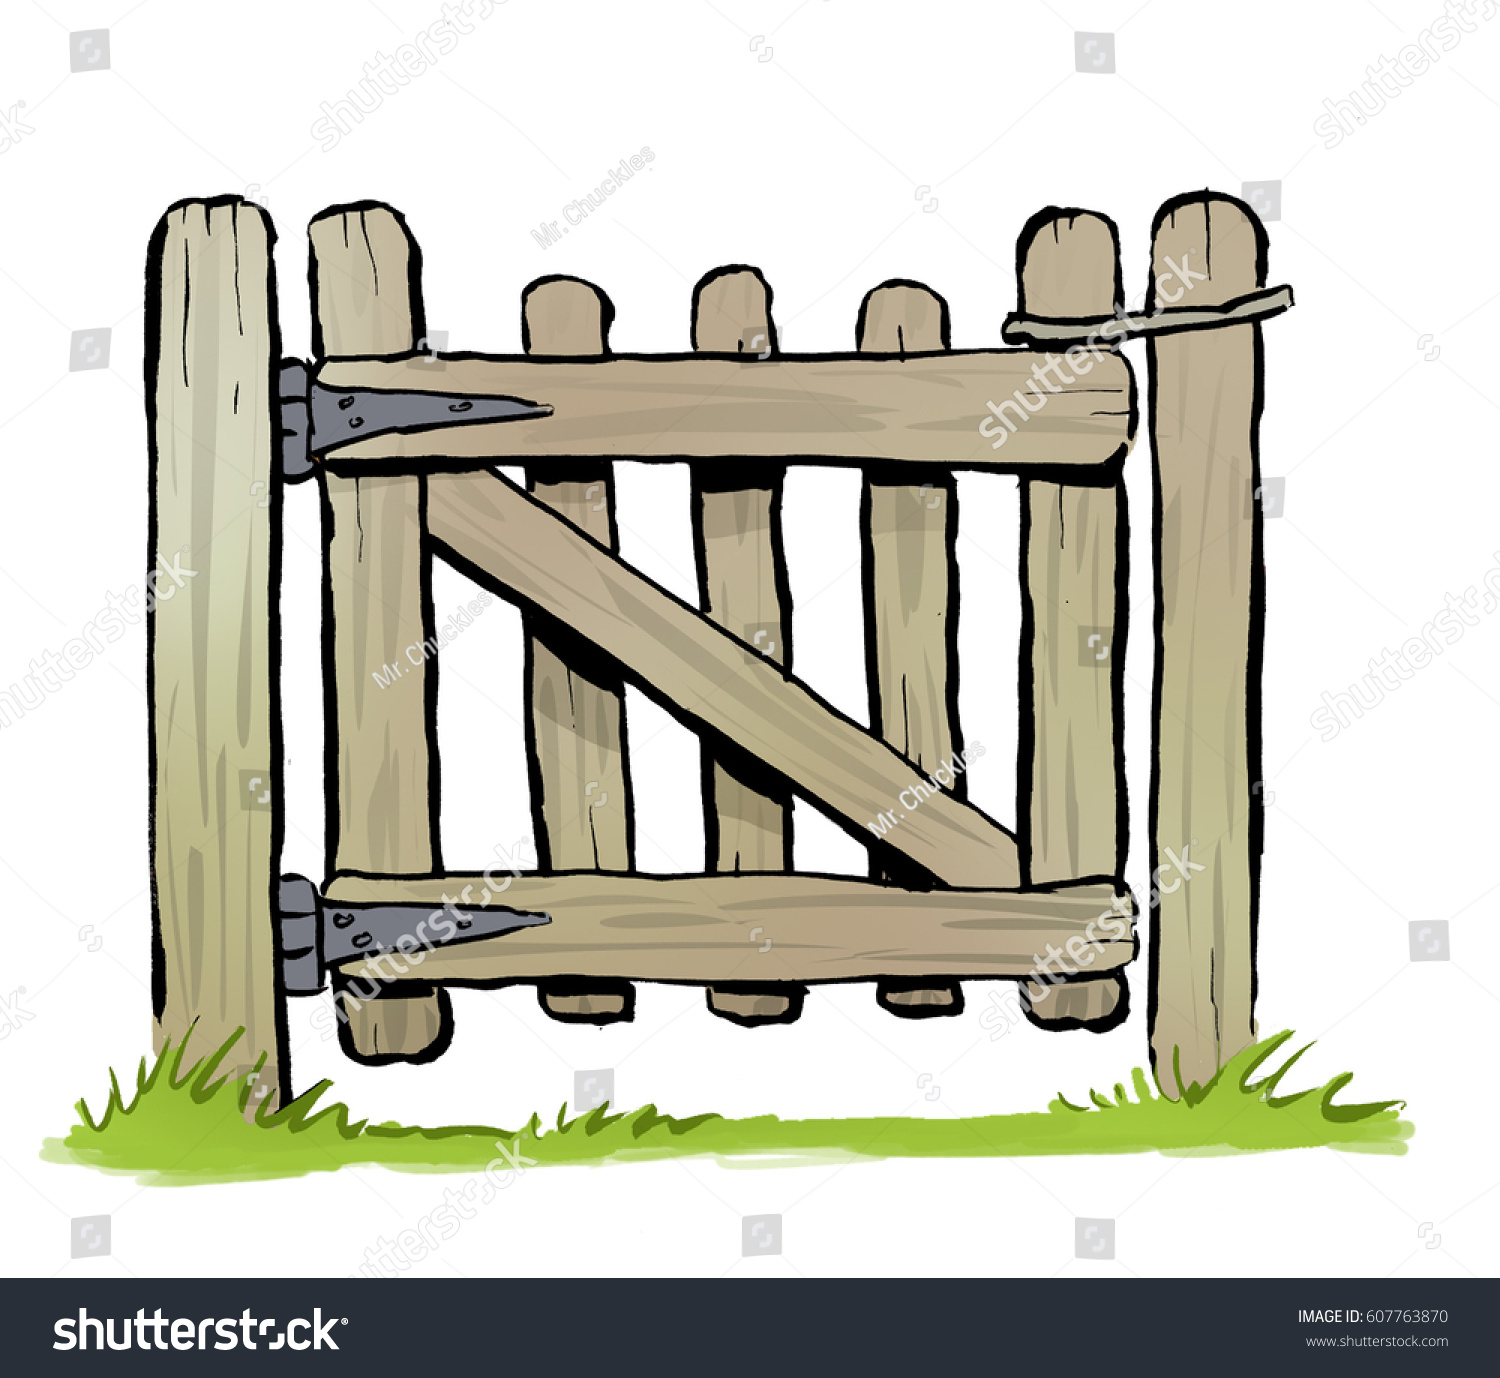 Cartoon illustration rustic wooden garden gate stock